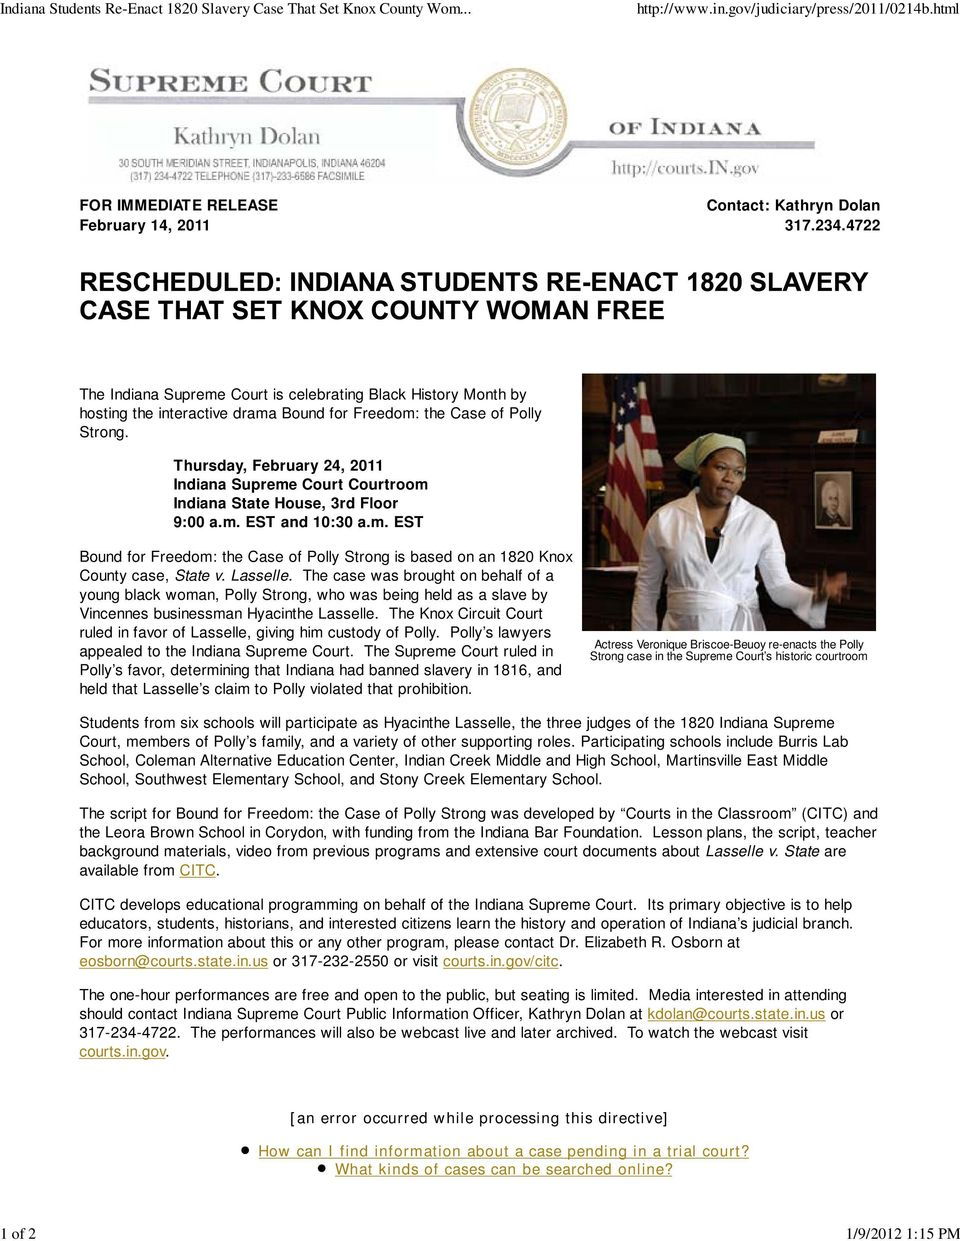 Thursday, February 24, 2011 Indiana Supreme Court Courtroom Indiana State House, 3rd Floor 9:00 a.m. EST and 10:30 a.m. EST Bound for Freedom: the Case of Polly Strong is based on an 1820 Knox County case, State v.